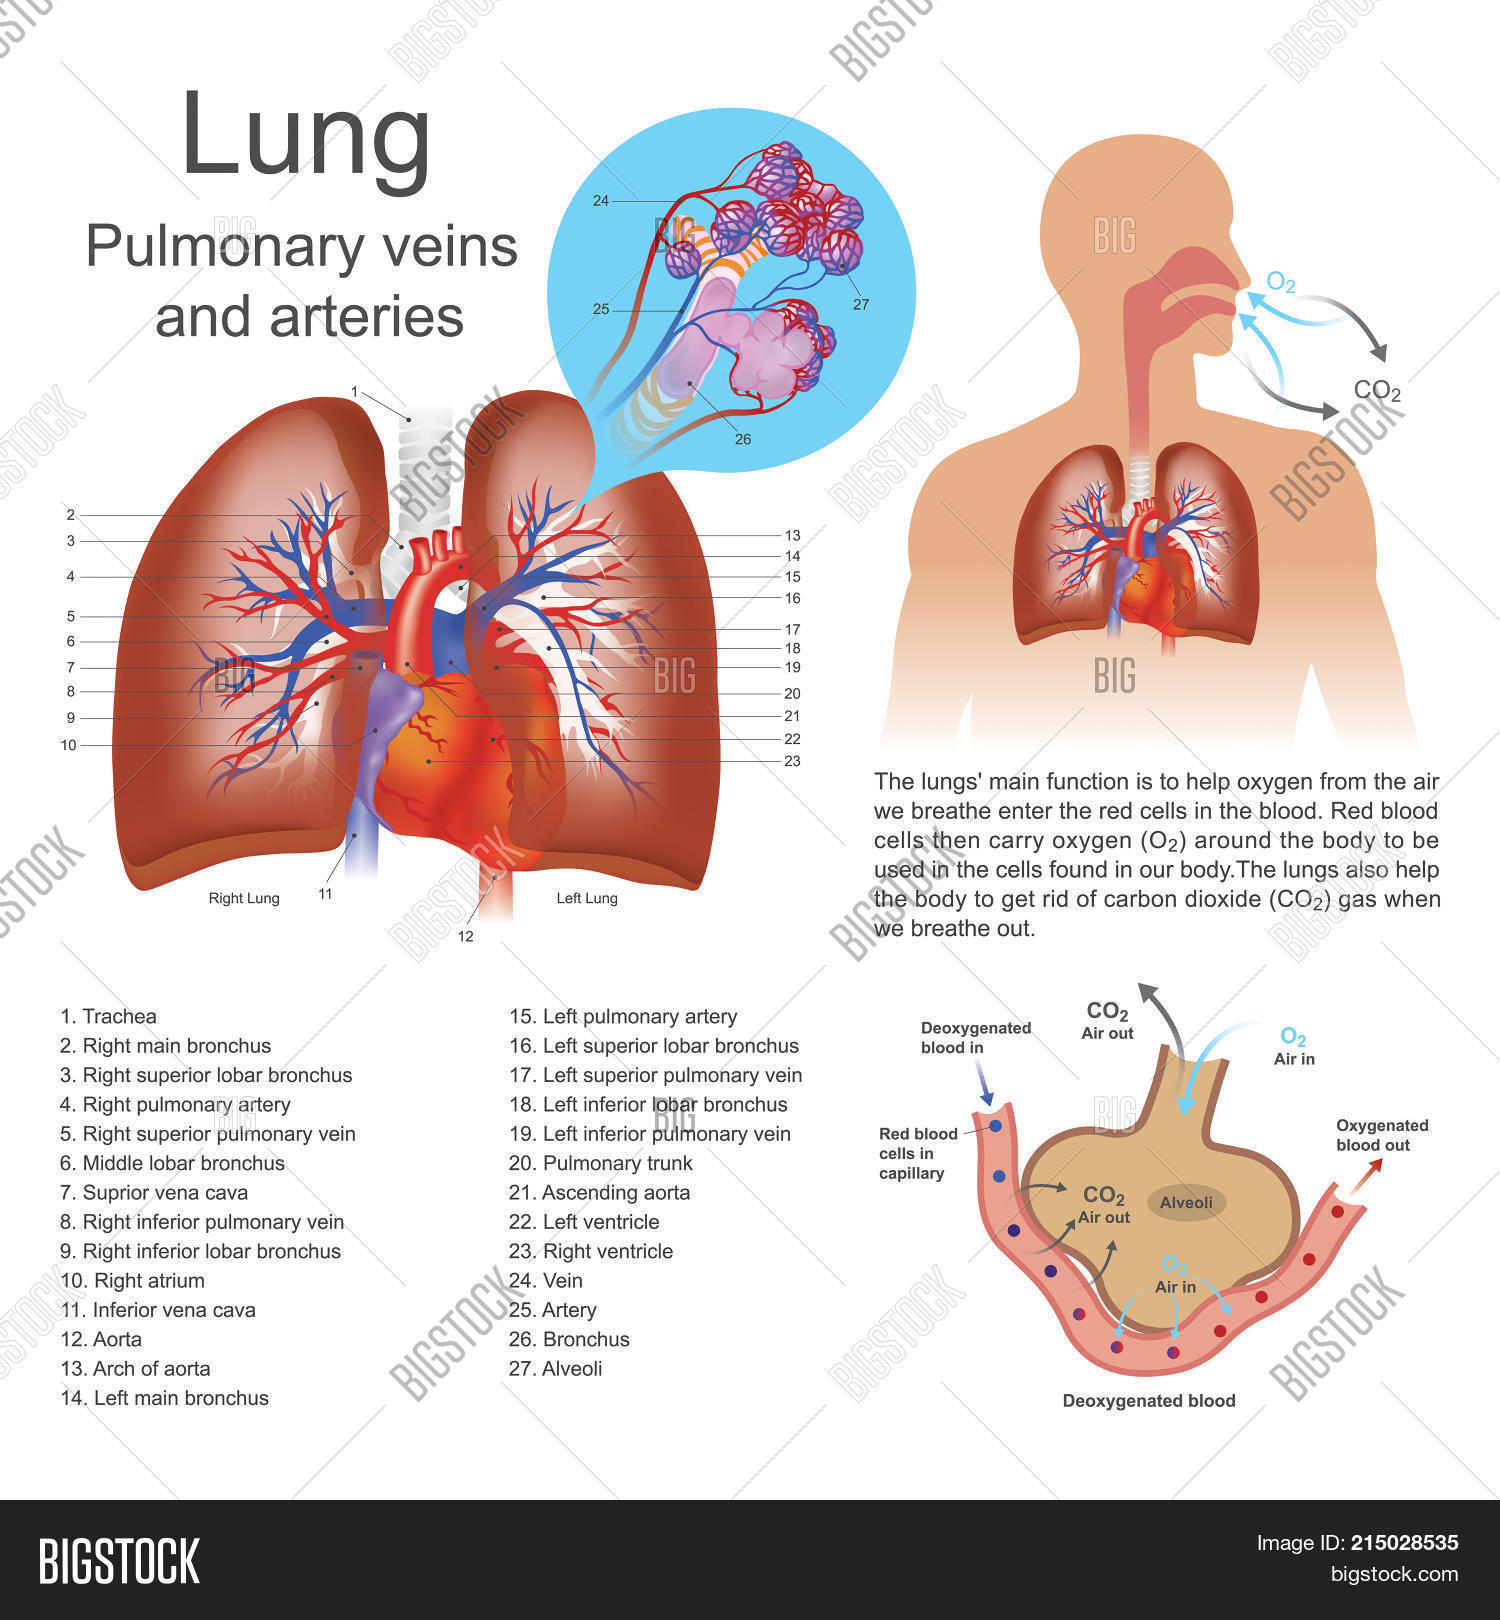 Lungs primary organs respiration image photo bigstock the lungs are the primary organs of respiration in humans and many other animals including a ccuart Gallery